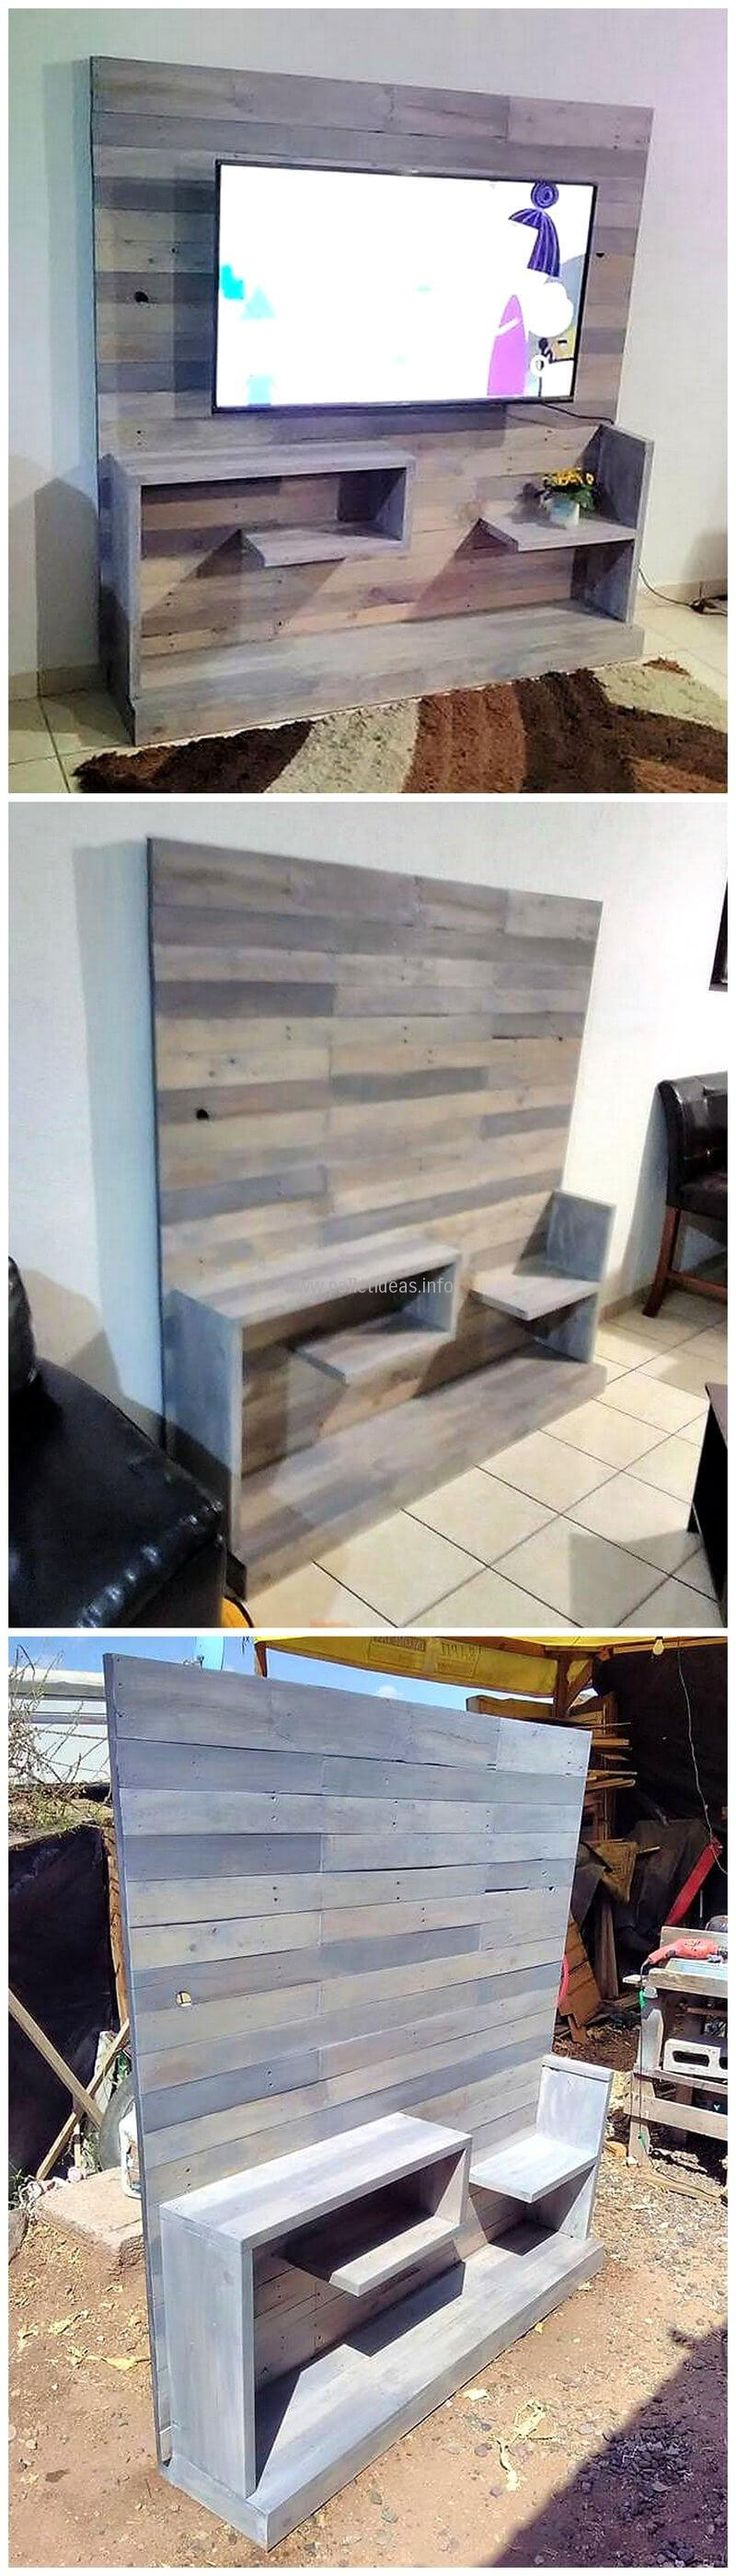 Another functional project of great use to be complemented and implemented for your home decor that not only serve you as a solution to your daily space saving and storage problems but adds beauty to your area as well. This recycled wood pallet t.v. stand is a very simple yet decent piece of art providing ample storage space in the form of shelves being constructed in it. It is a plain furniture with unique looks and functional value.